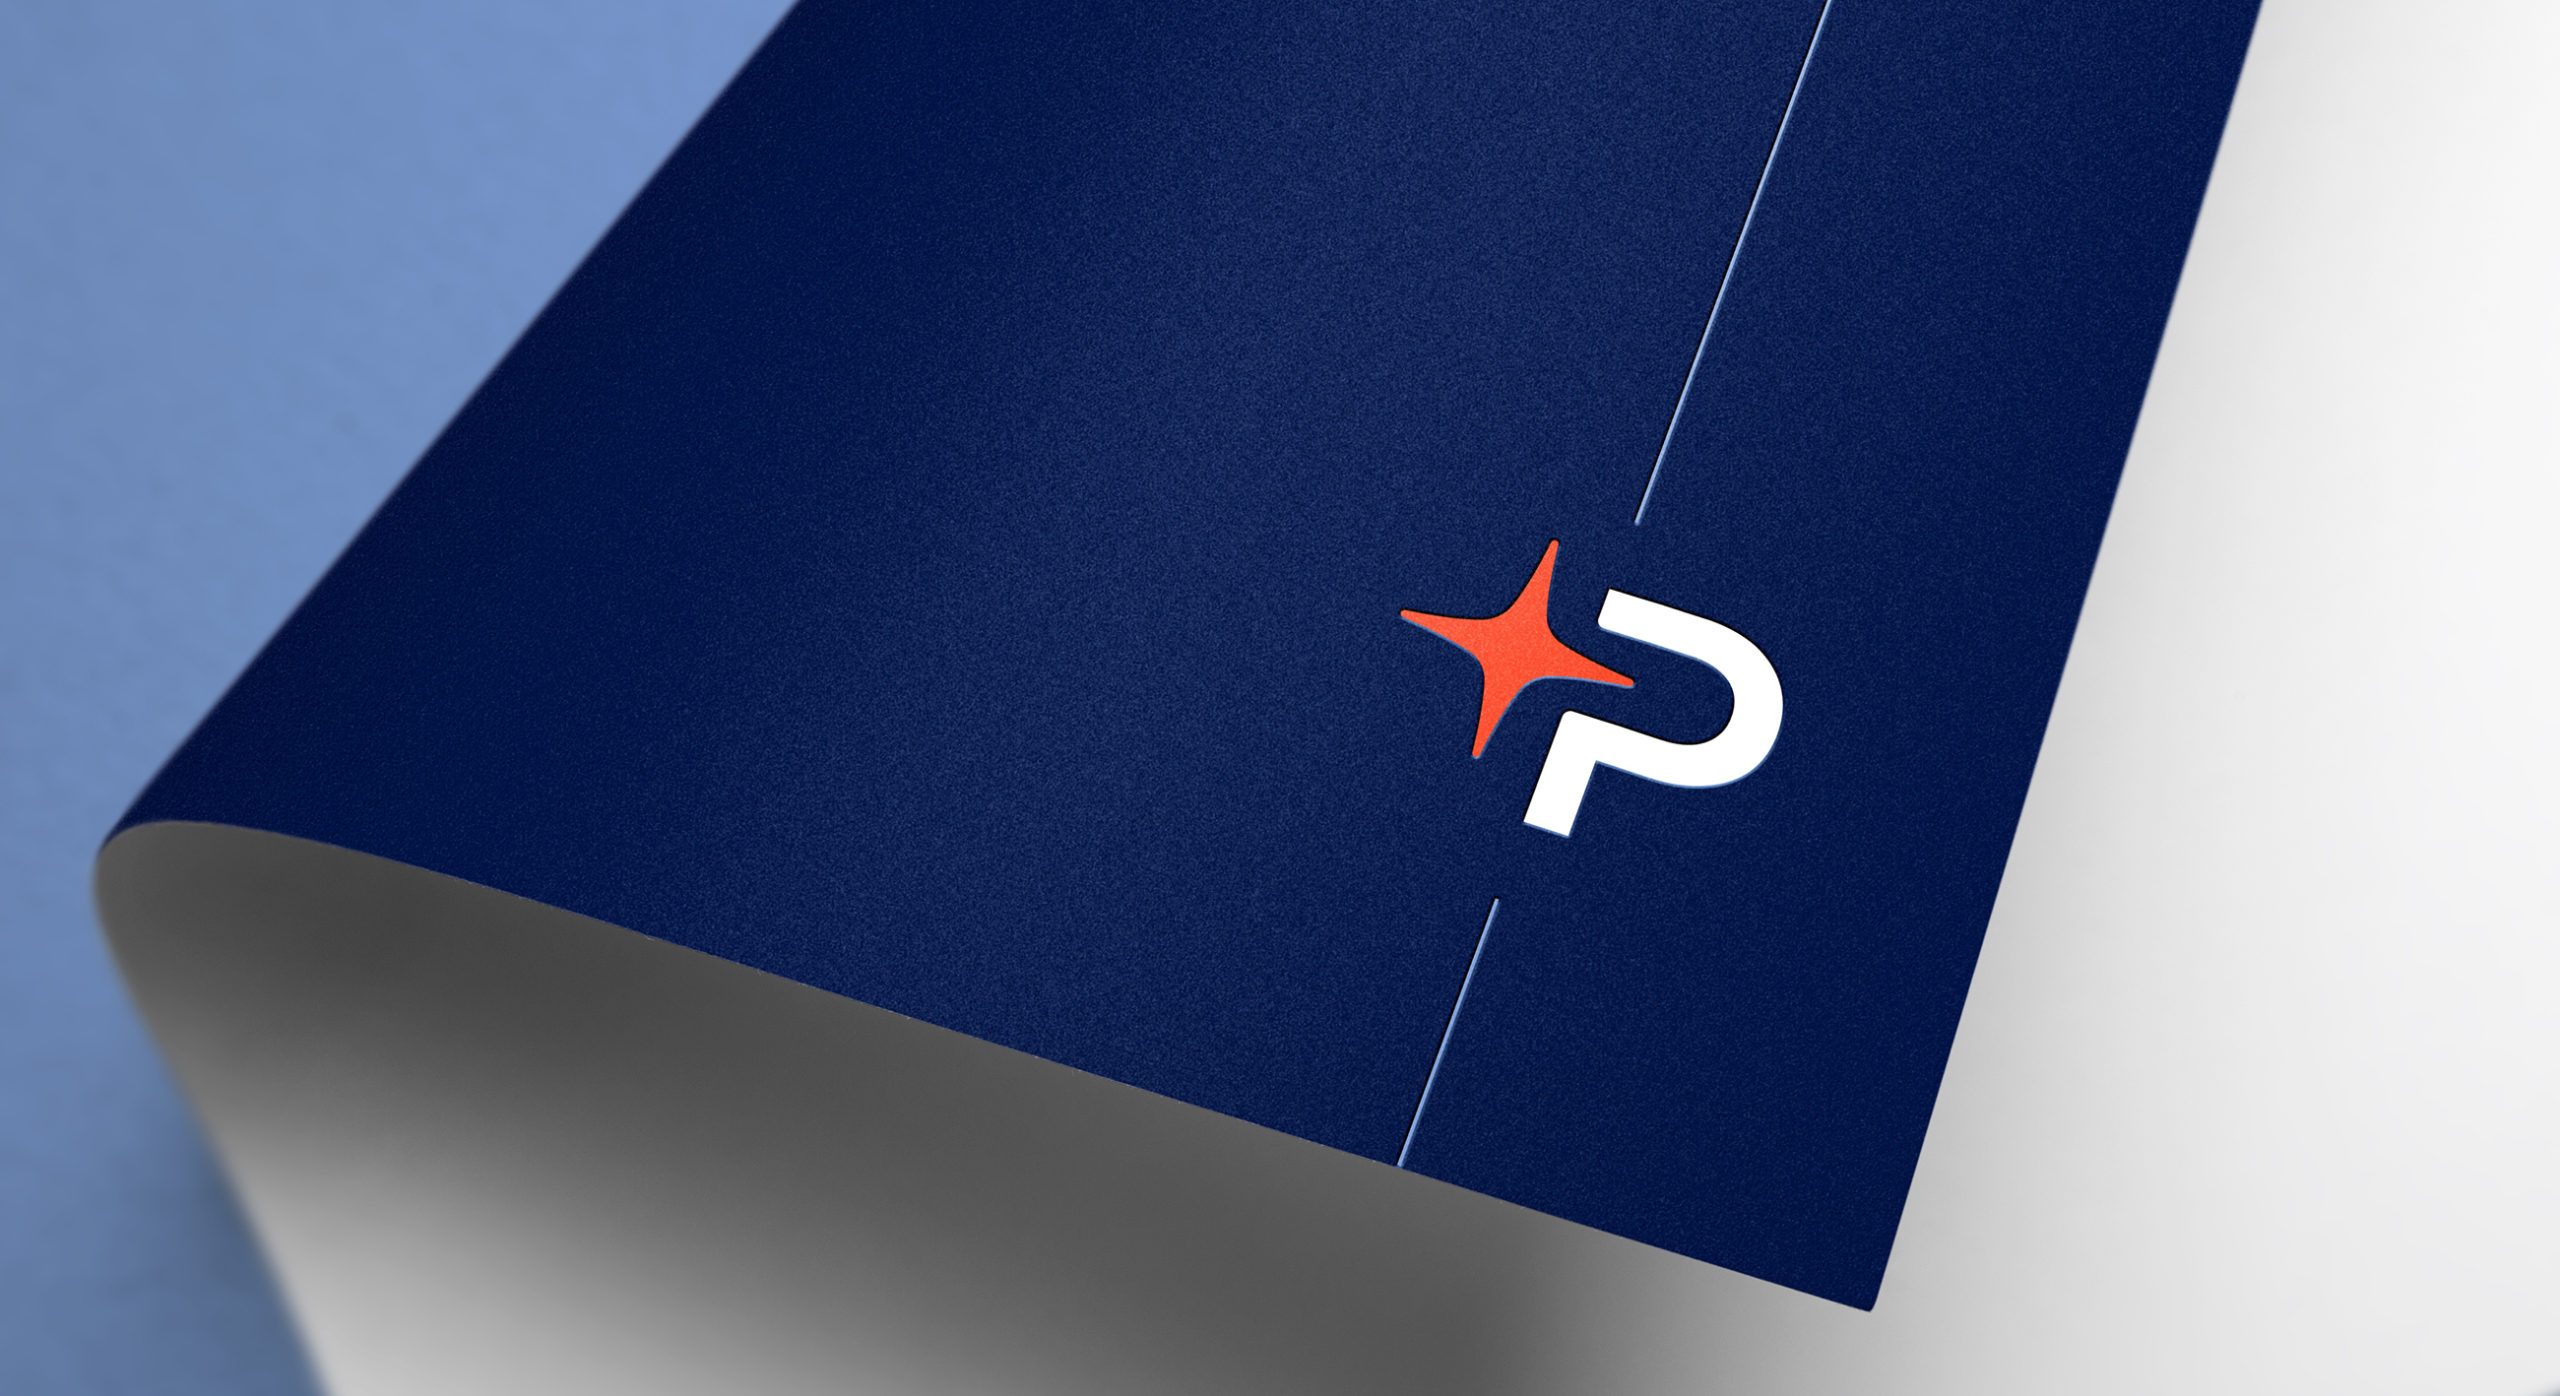 The branding can also be used as a decorative device whereby only the P initial and star element is used in conjunction with a blue line which anchors the element to page margins.